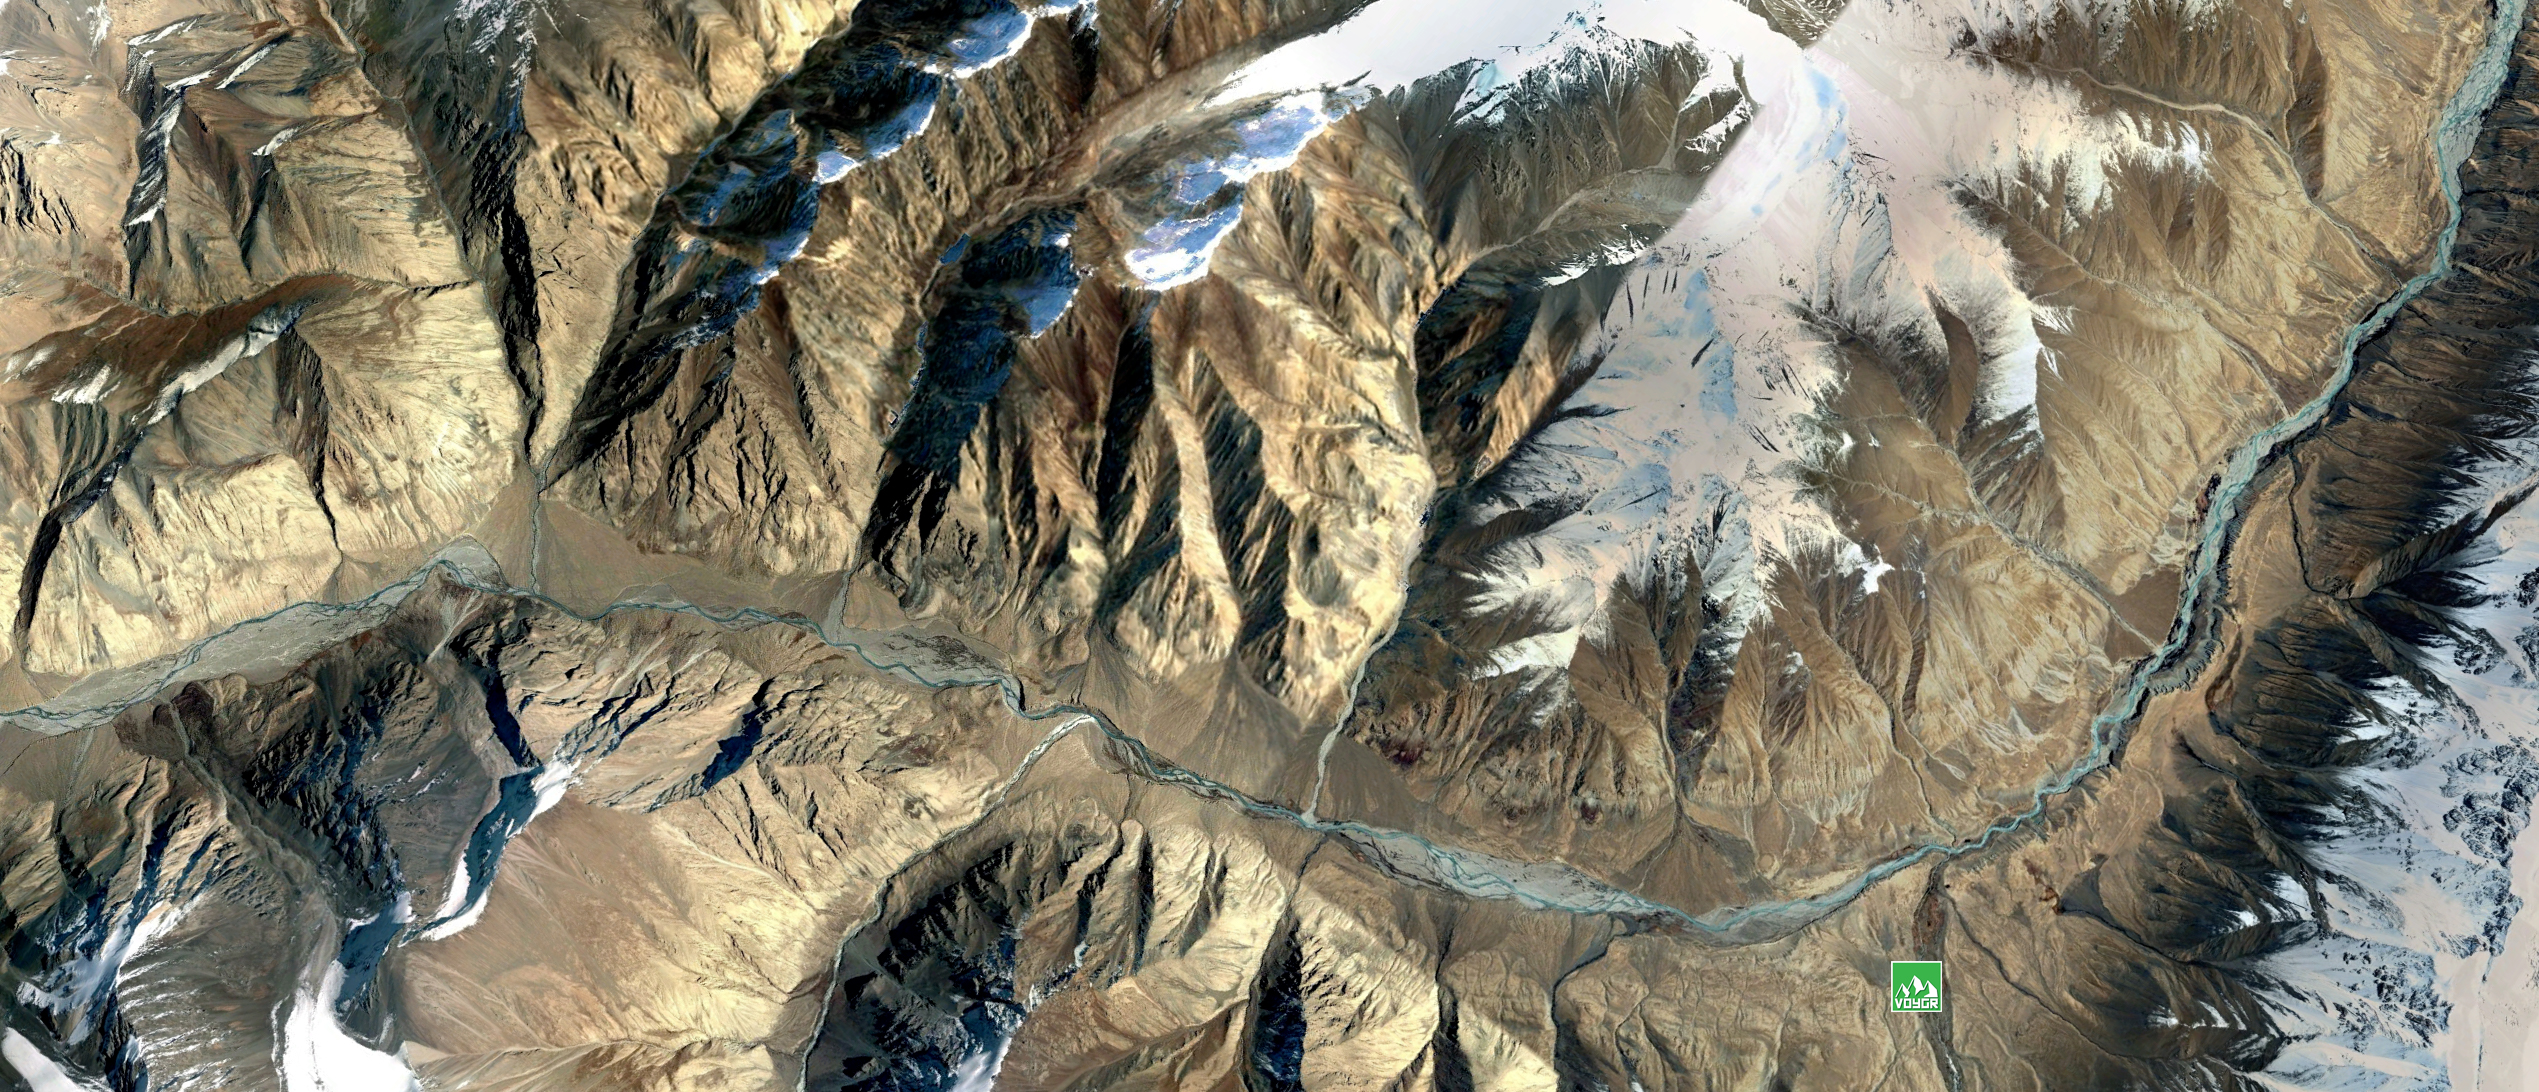 Terrain Overview Of Sarychat For The Snow Leopard Expedition To Kyrgzystan